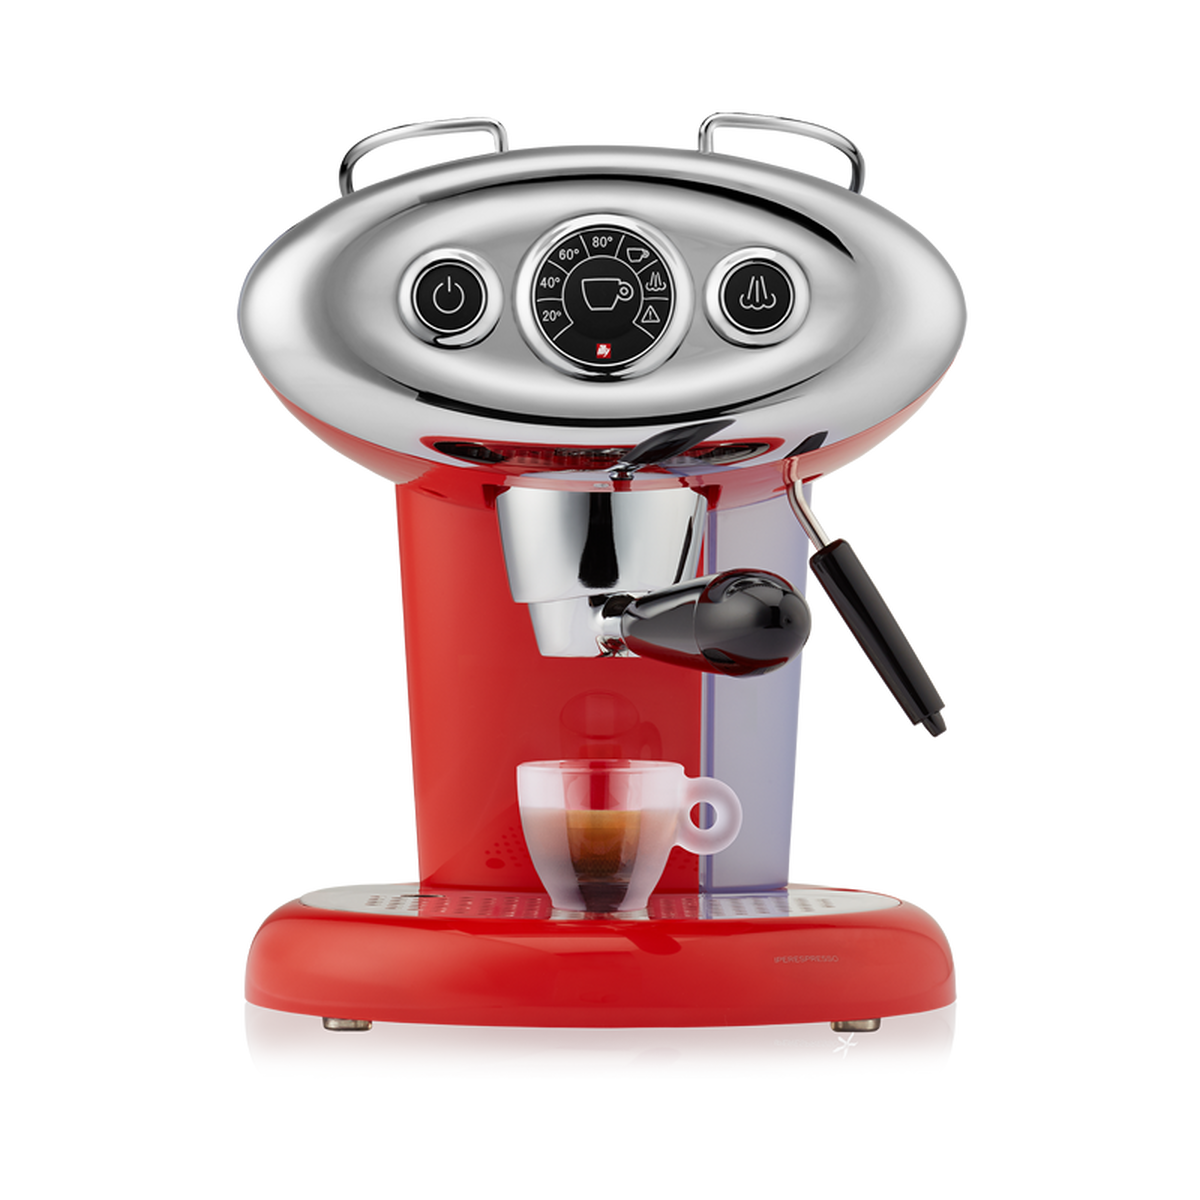 Red and chrome espresso machine with a milk steaming wand